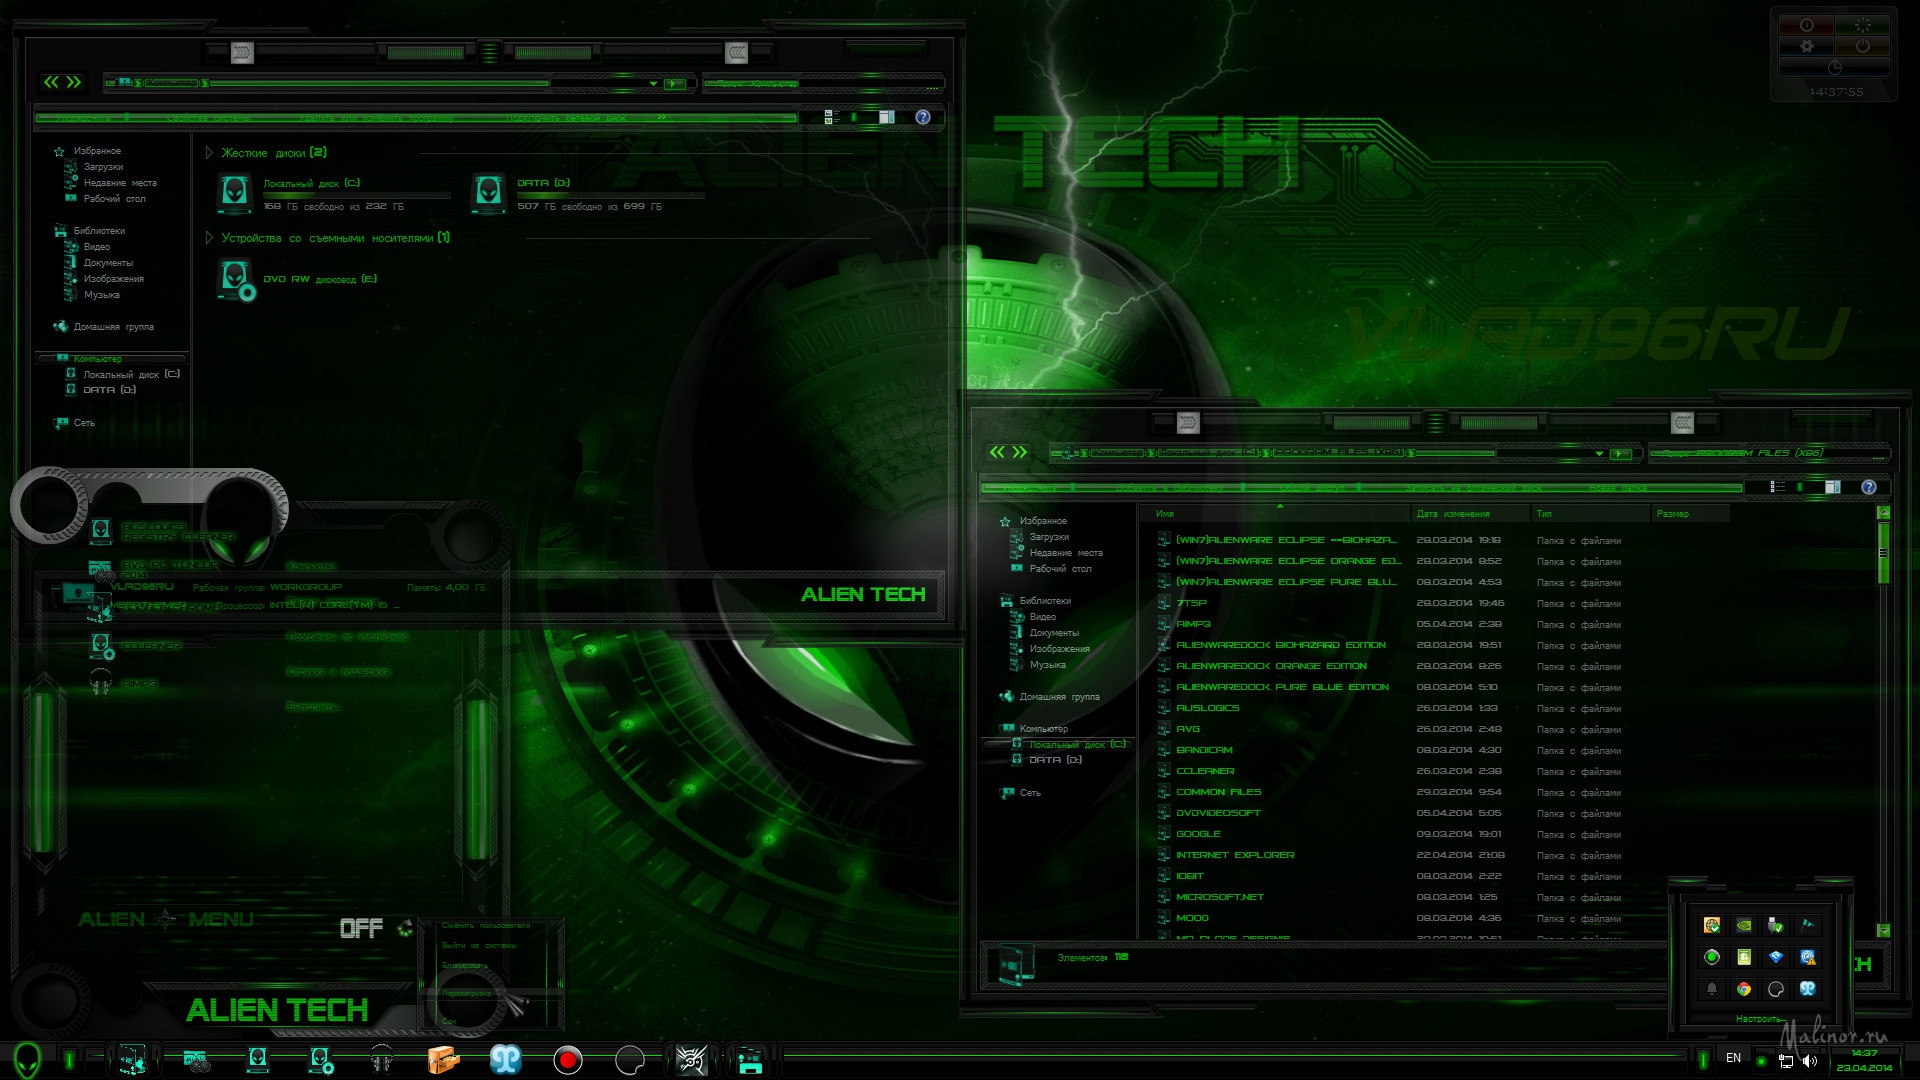 Alien tech (green) - Тема для Windows 7